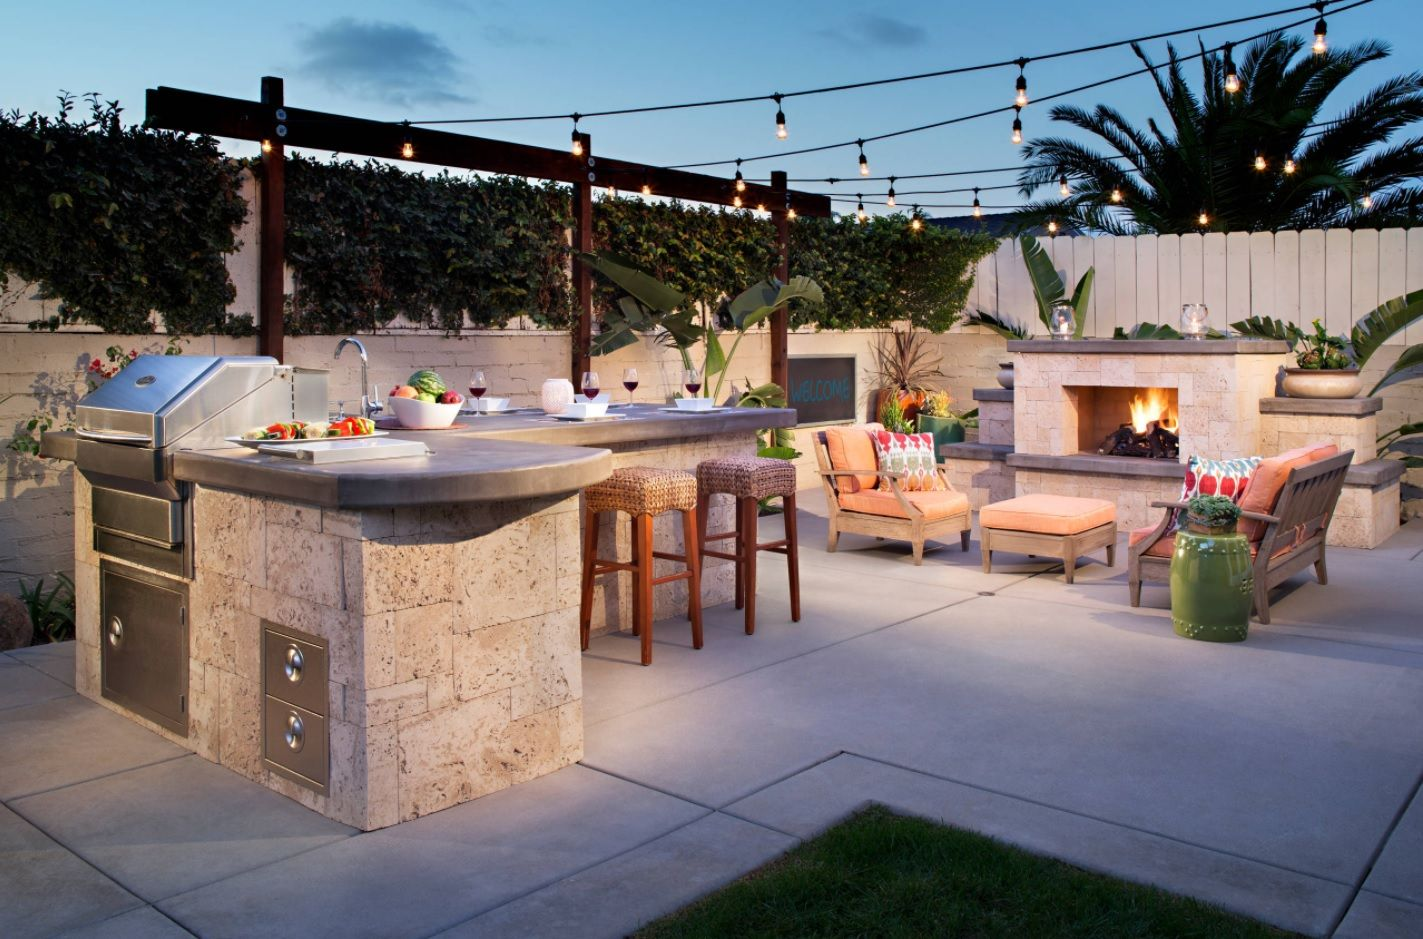 DIY Pouring Concrete Countertops. Interior Usage, Photos, Ideas. Outdoor backyard rest zone